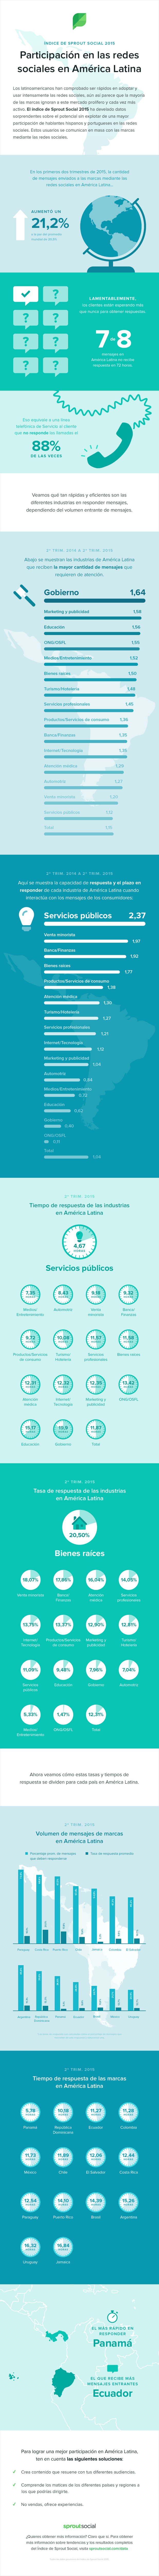 Sprout-Index-2015-Infographic-Latin-America_Spanish2